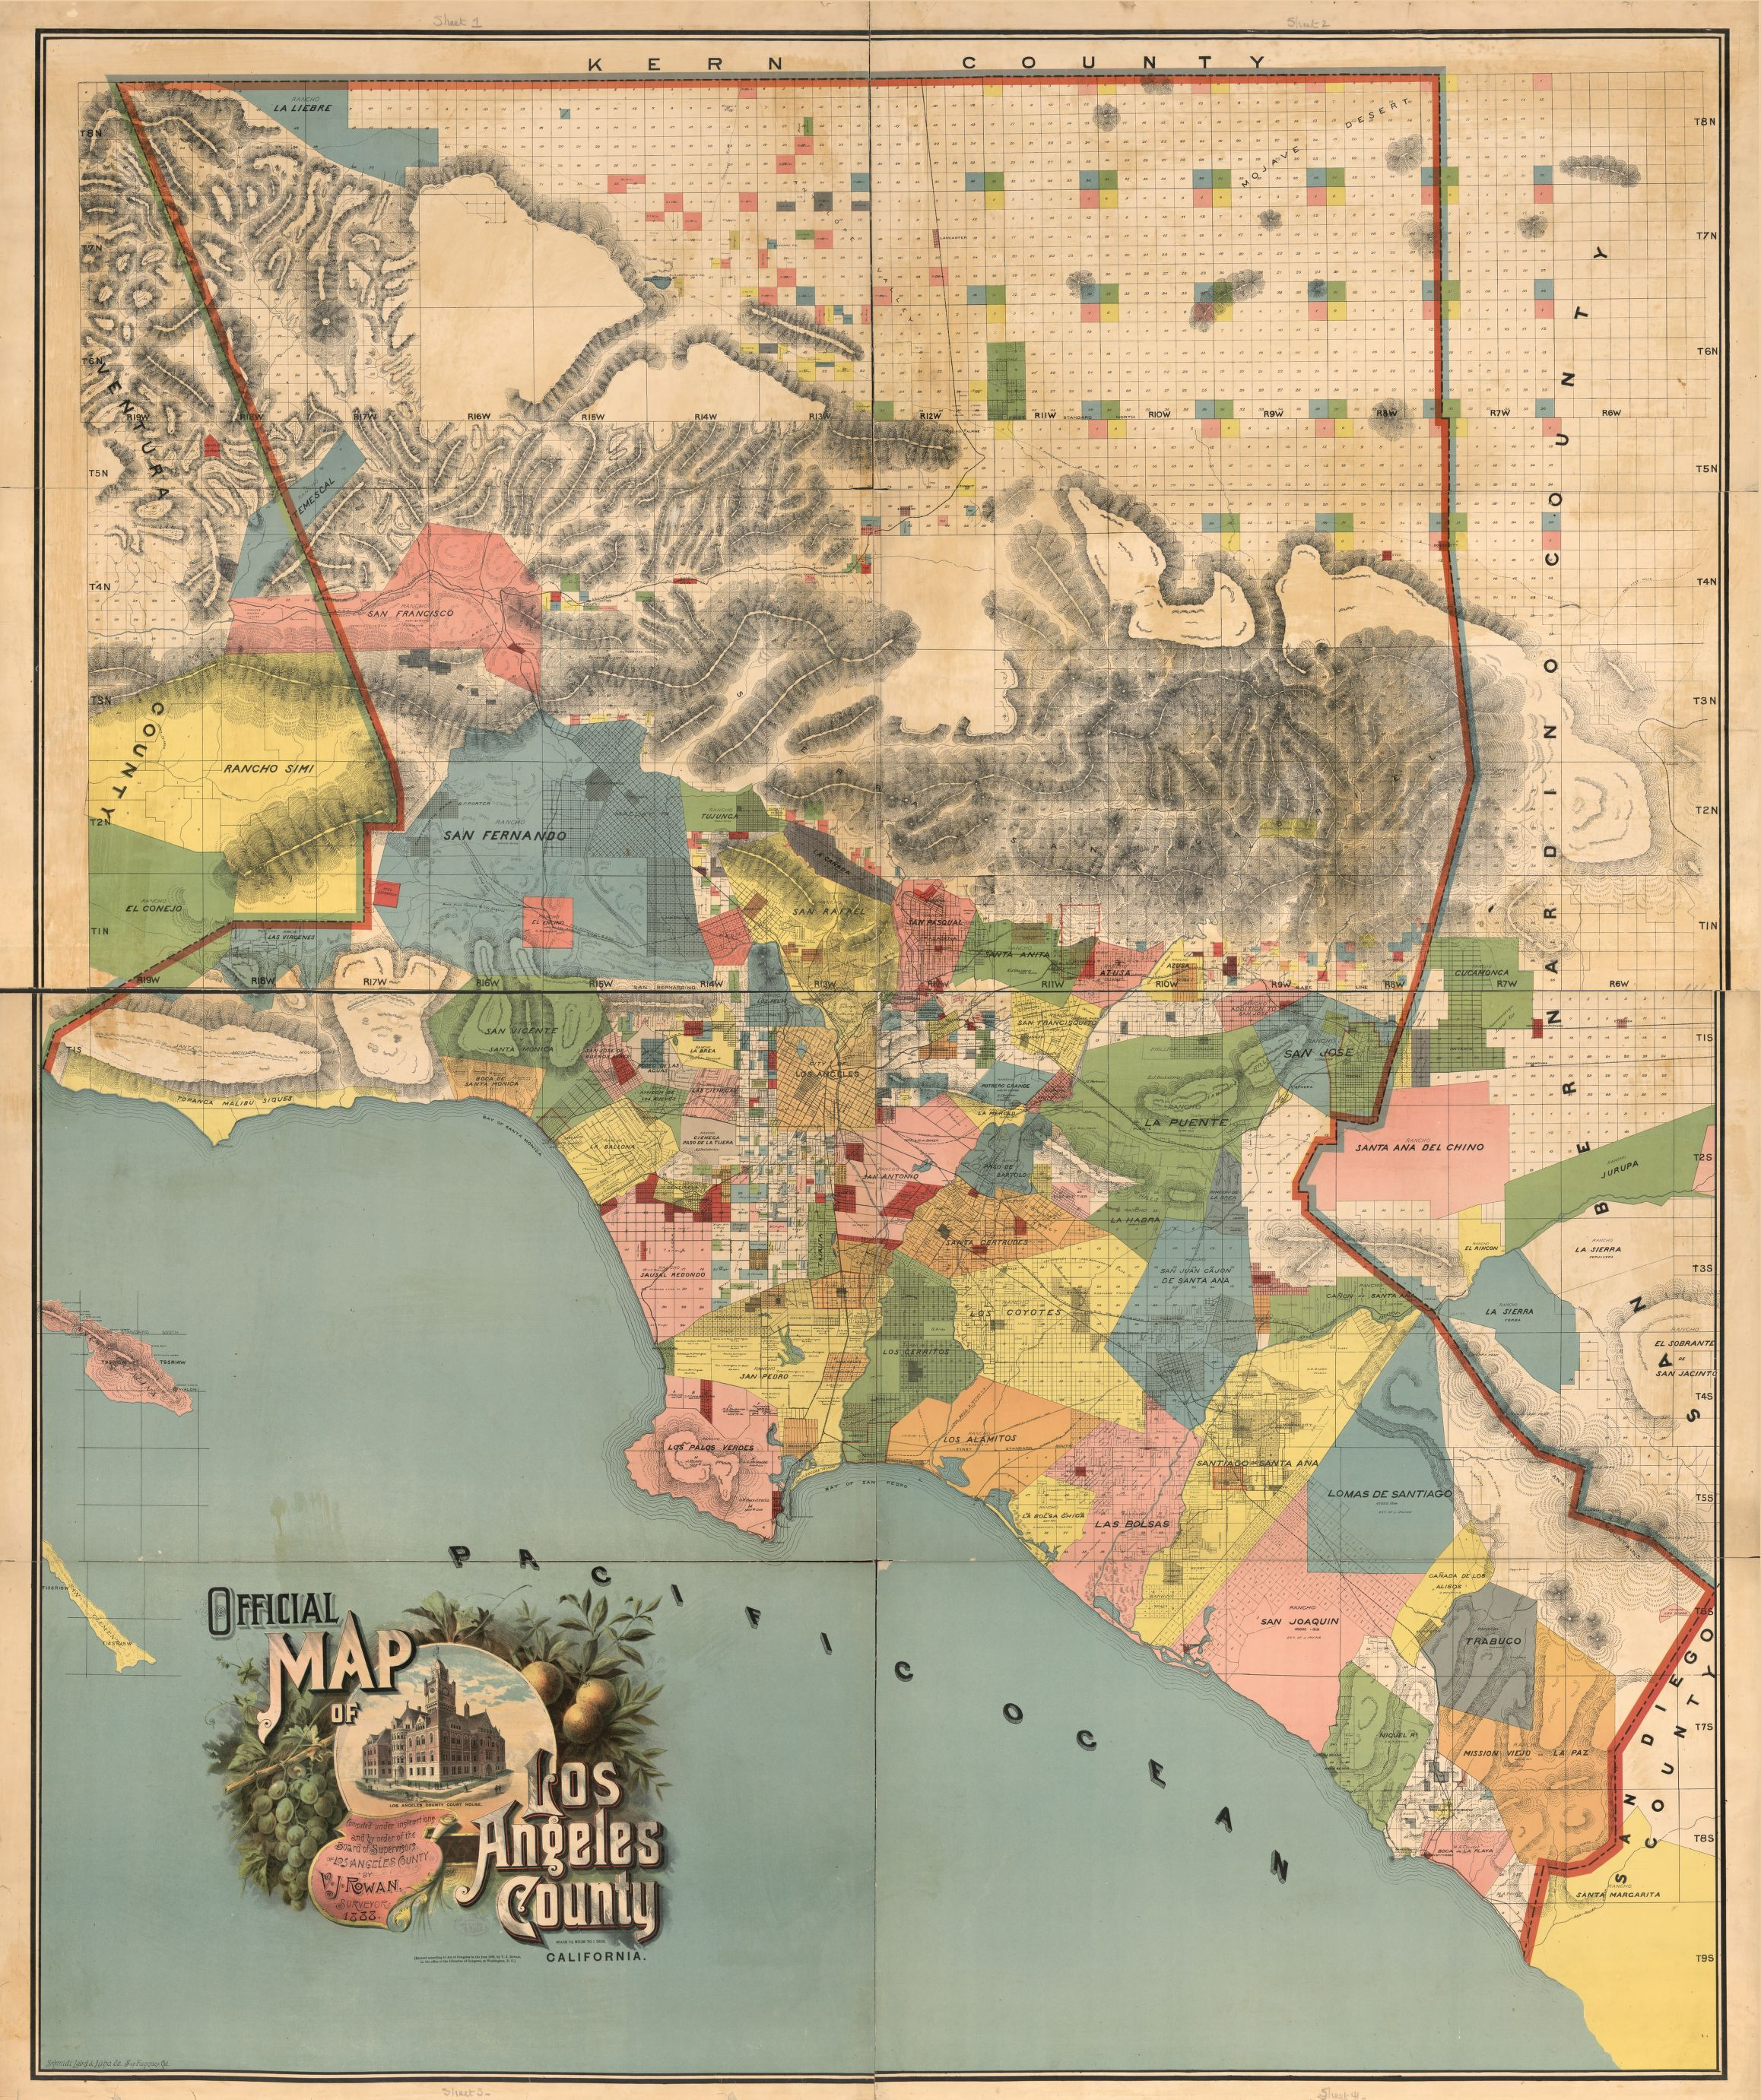 photograph relating to Printable Map of Orange County Ca called Los Angeles County Map Practice, Print, Maps, Alphabets